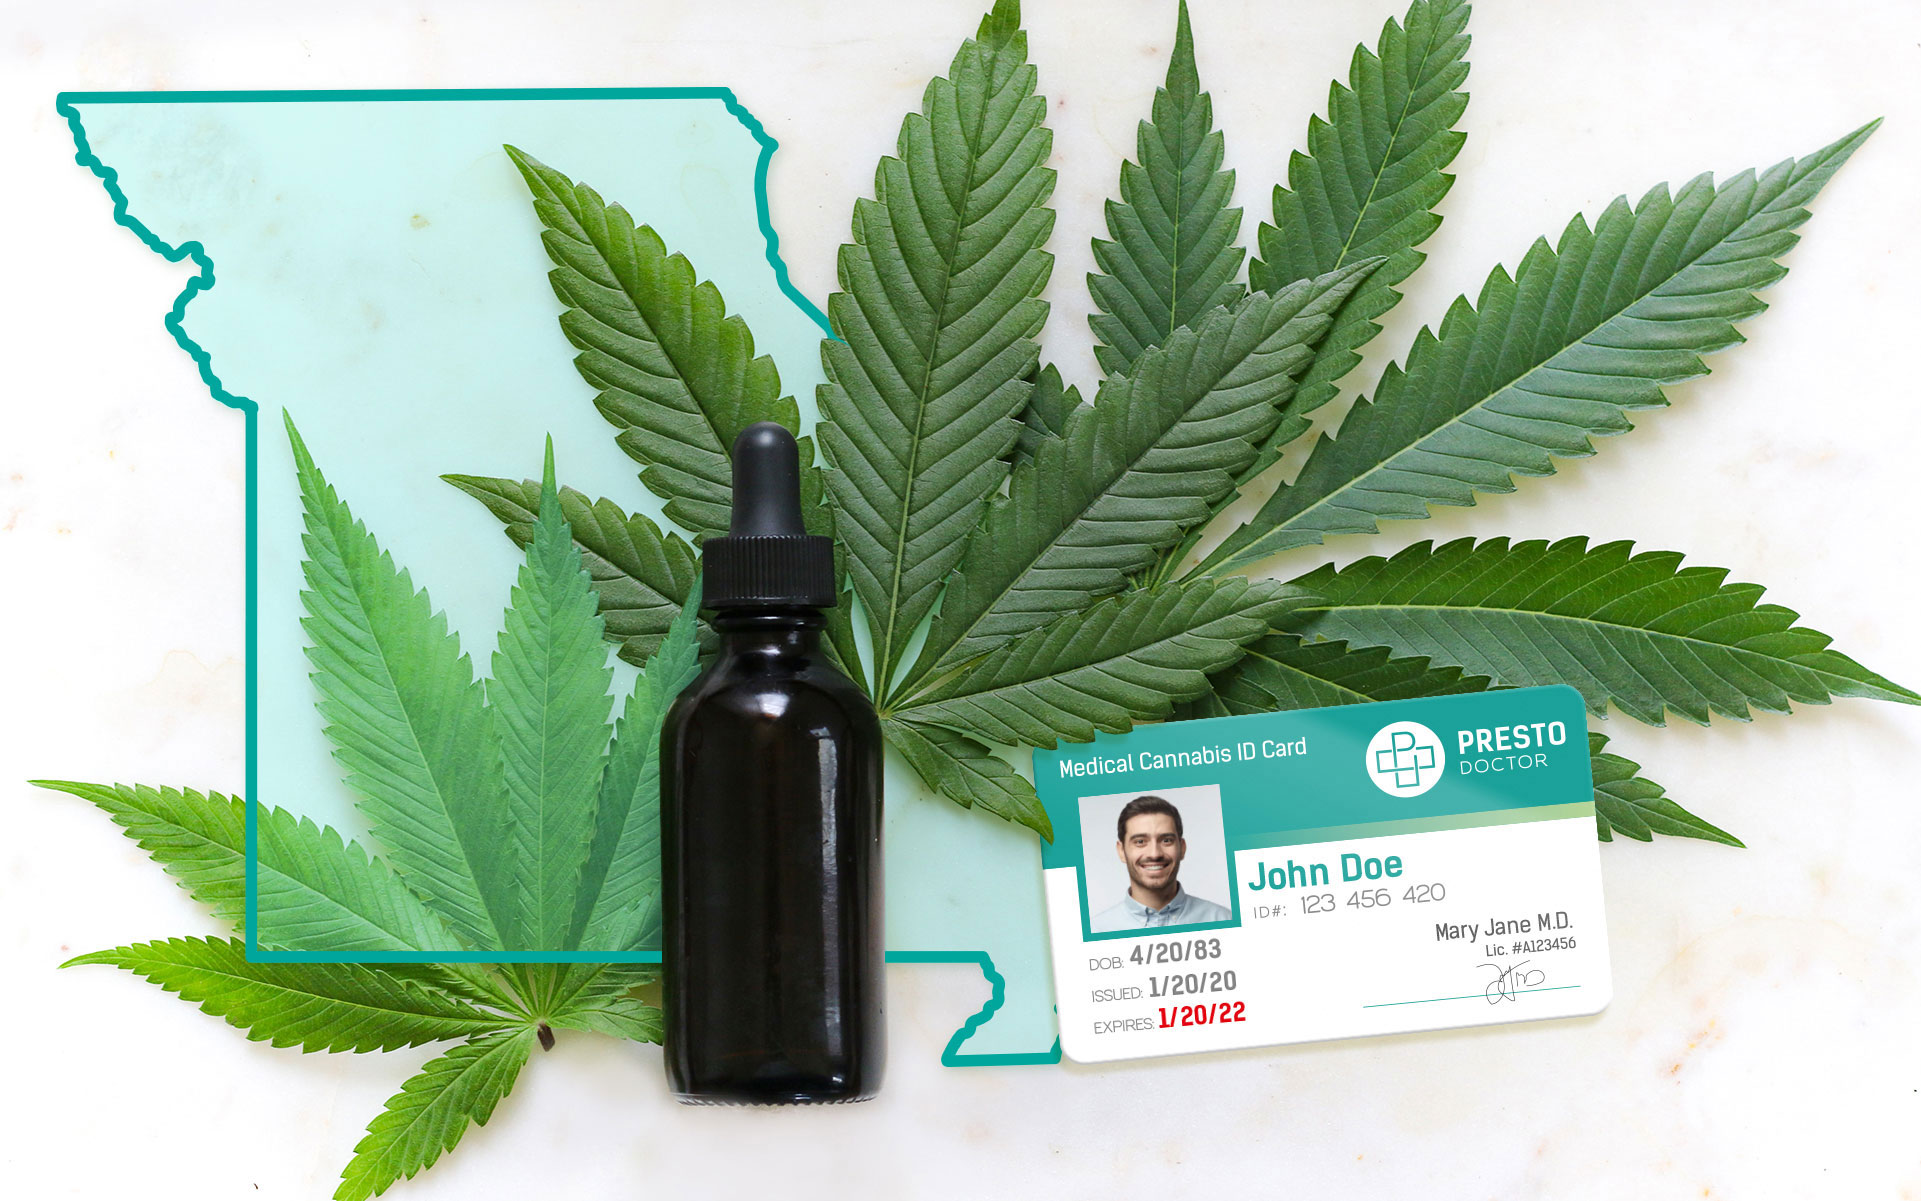 online medical marijuana doctors, how to get a medical marijuana card